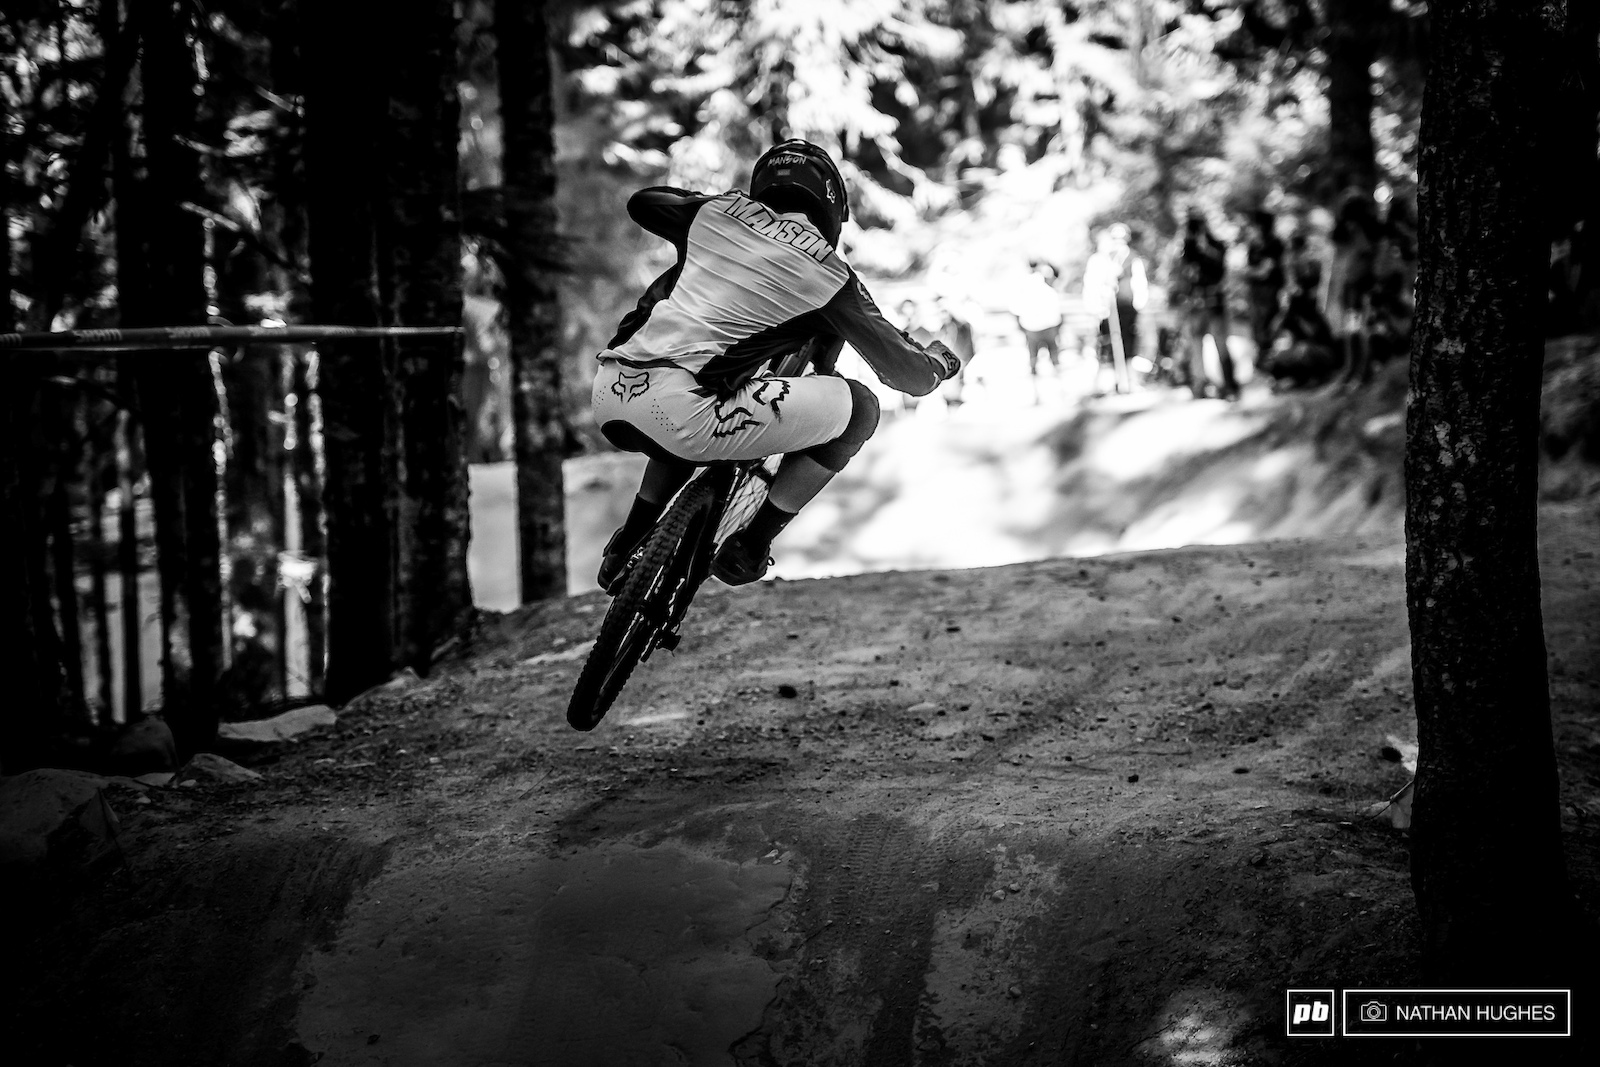 Winner of the unofficial downhill bike race was Magnus Manson hammering into 4th on a rip-roaring lap.